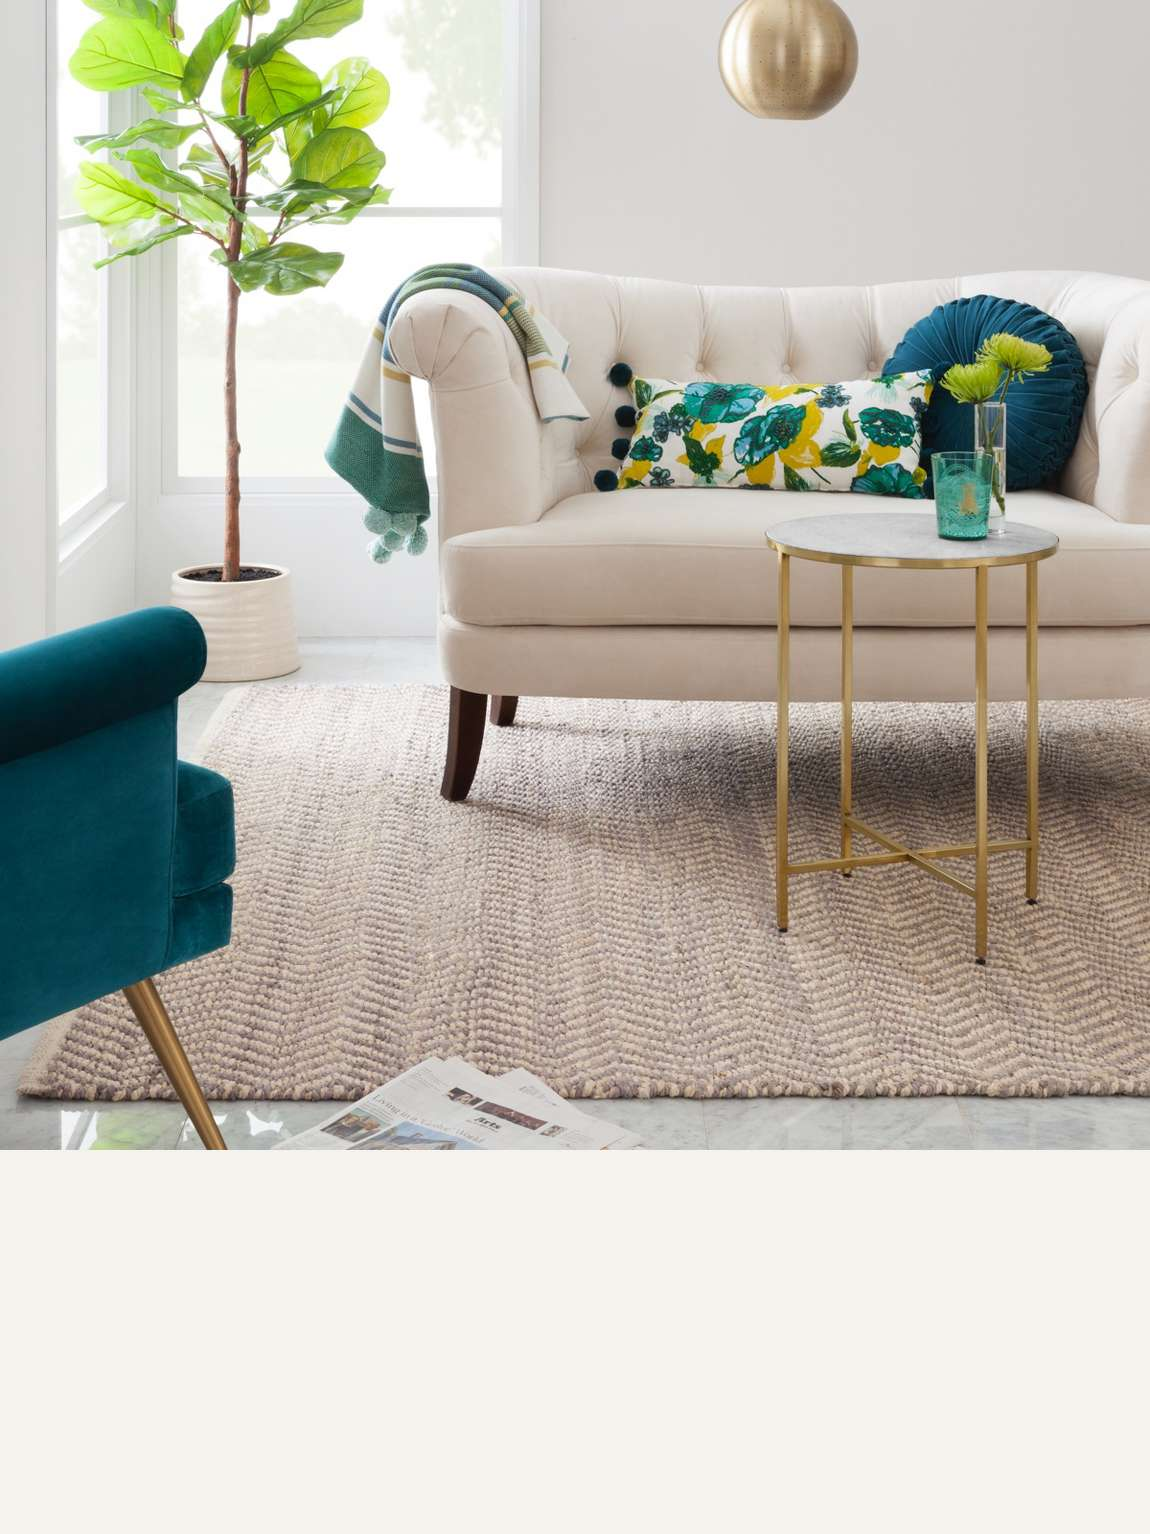 Swell Signature Design By Ashley Sofas Sectionals Target Lamtechconsult Wood Chair Design Ideas Lamtechconsultcom